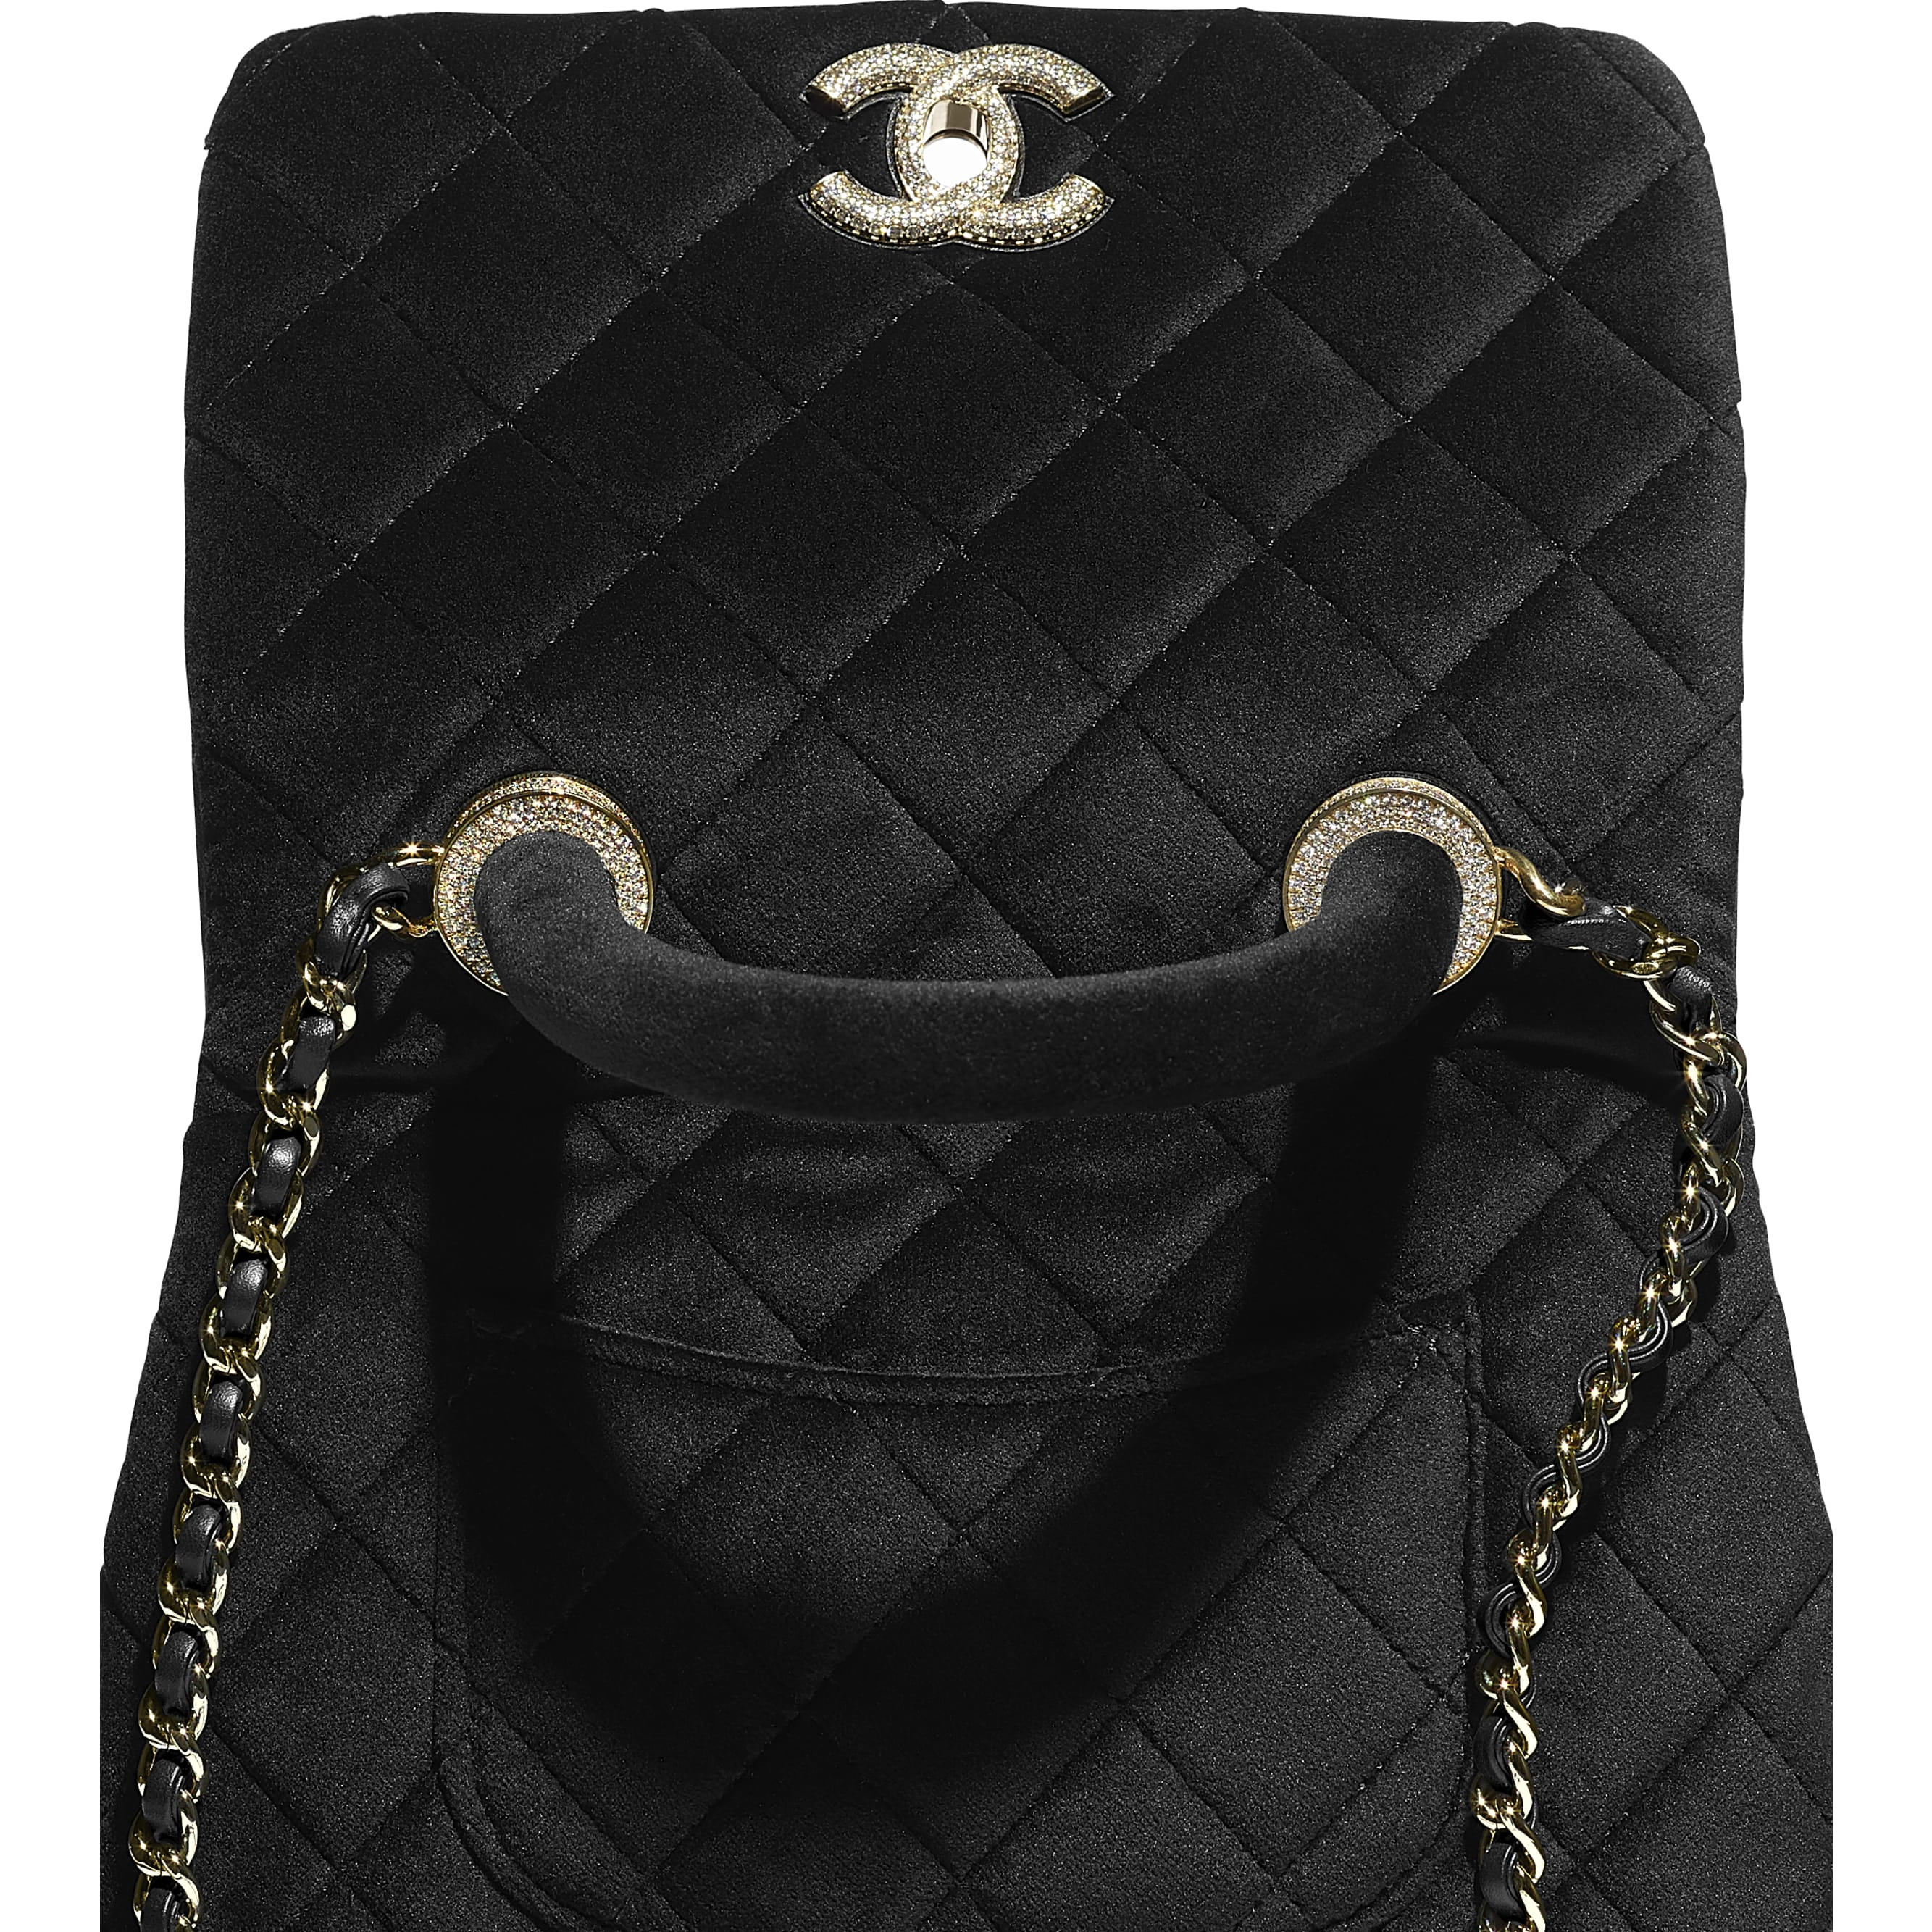 Mini Flap Bag with Handle - Black - Velvet, Diamanté & Gold-Tone Metal - CHANEL - Extra view - see standard sized version